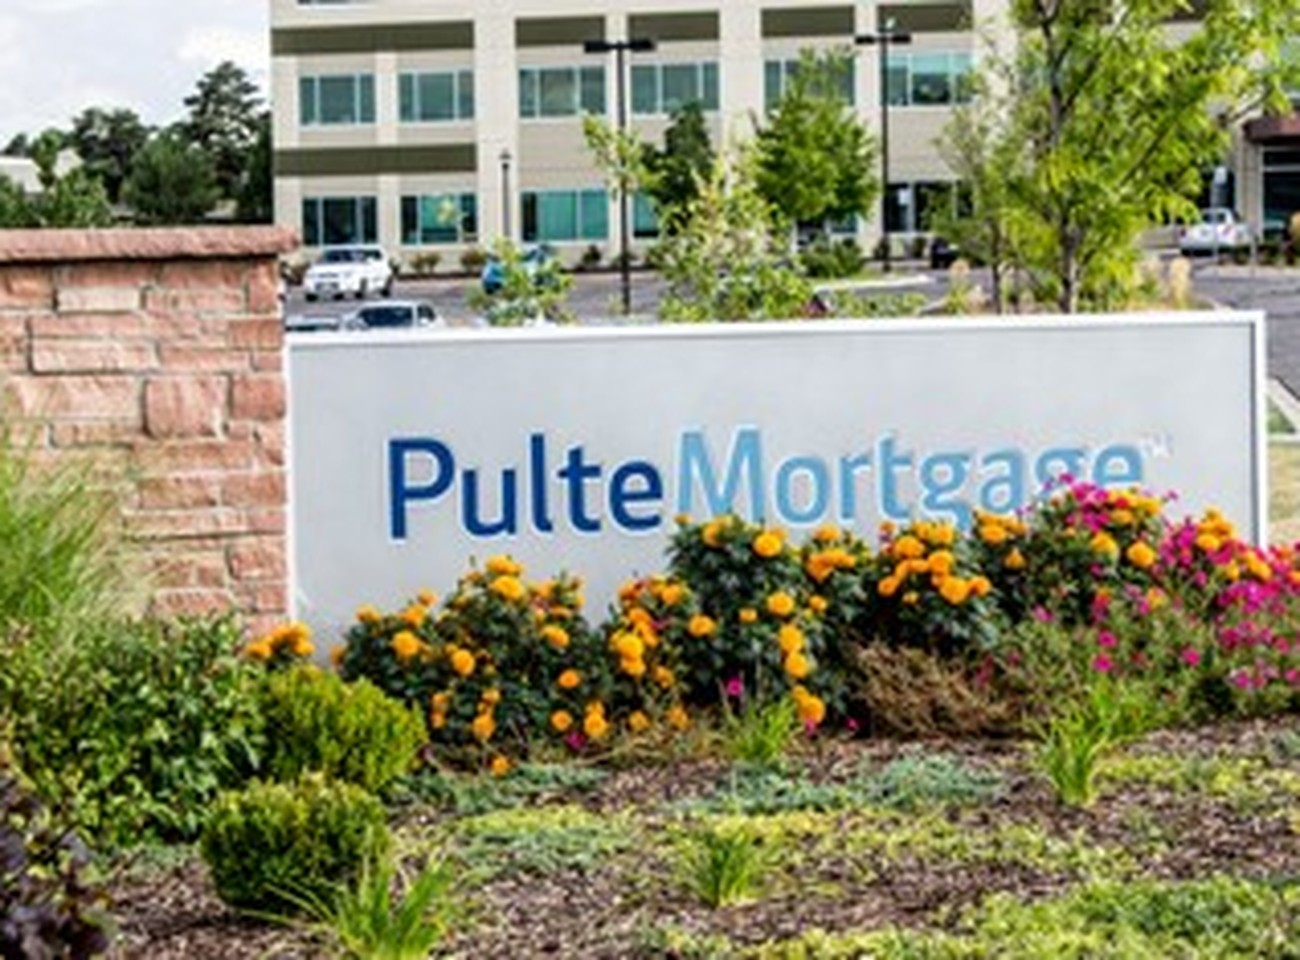 Pulte Mortgage Careers